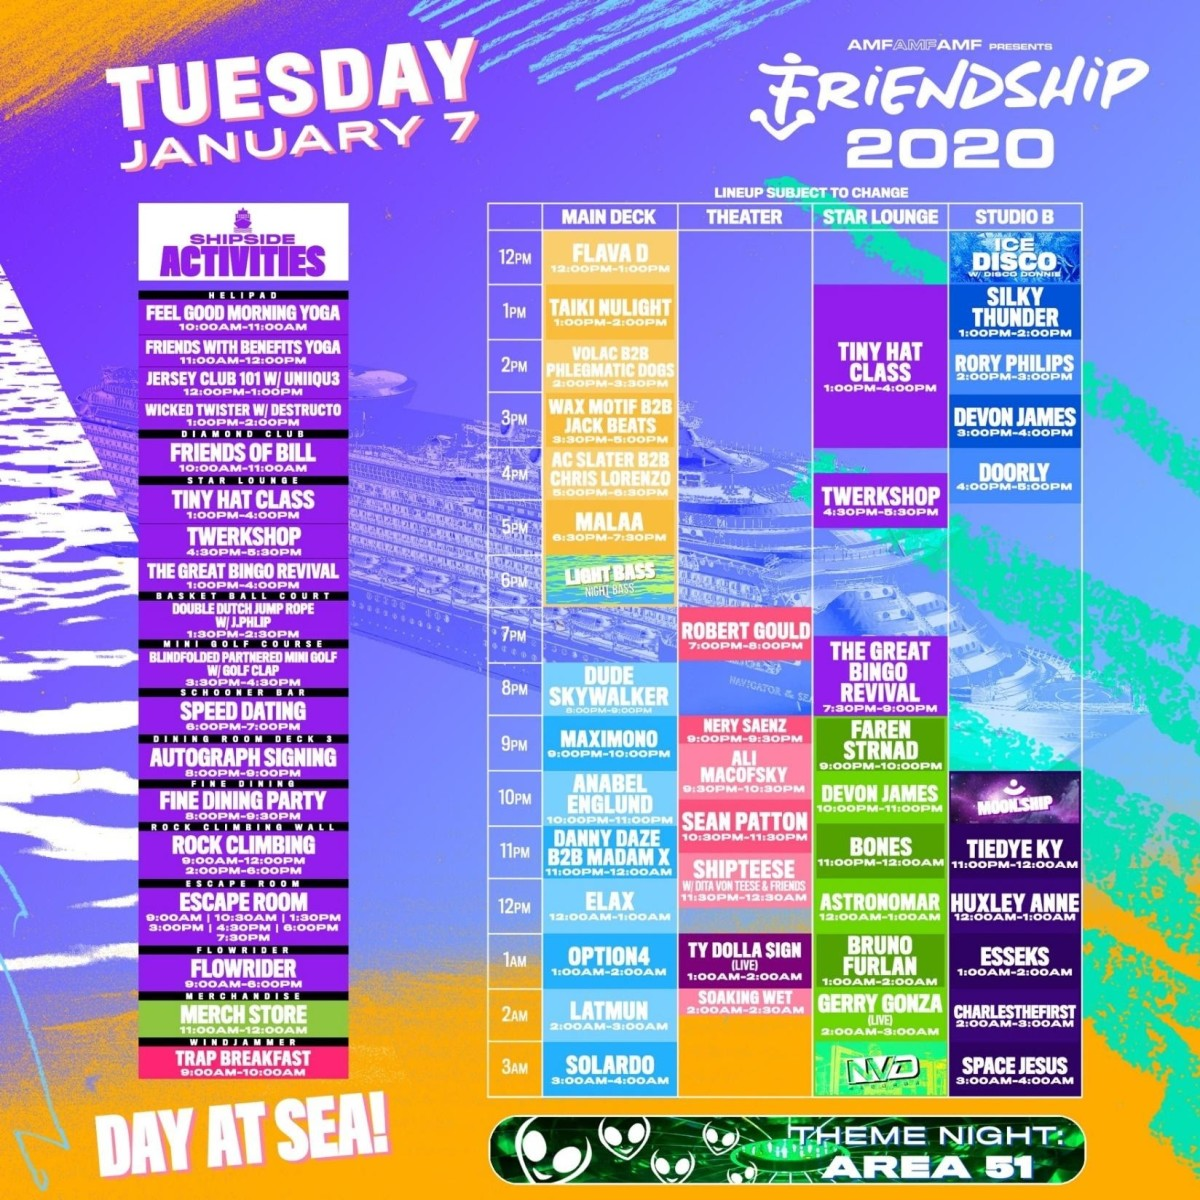 FriendShip 2020 Lineup by Day Tuesday